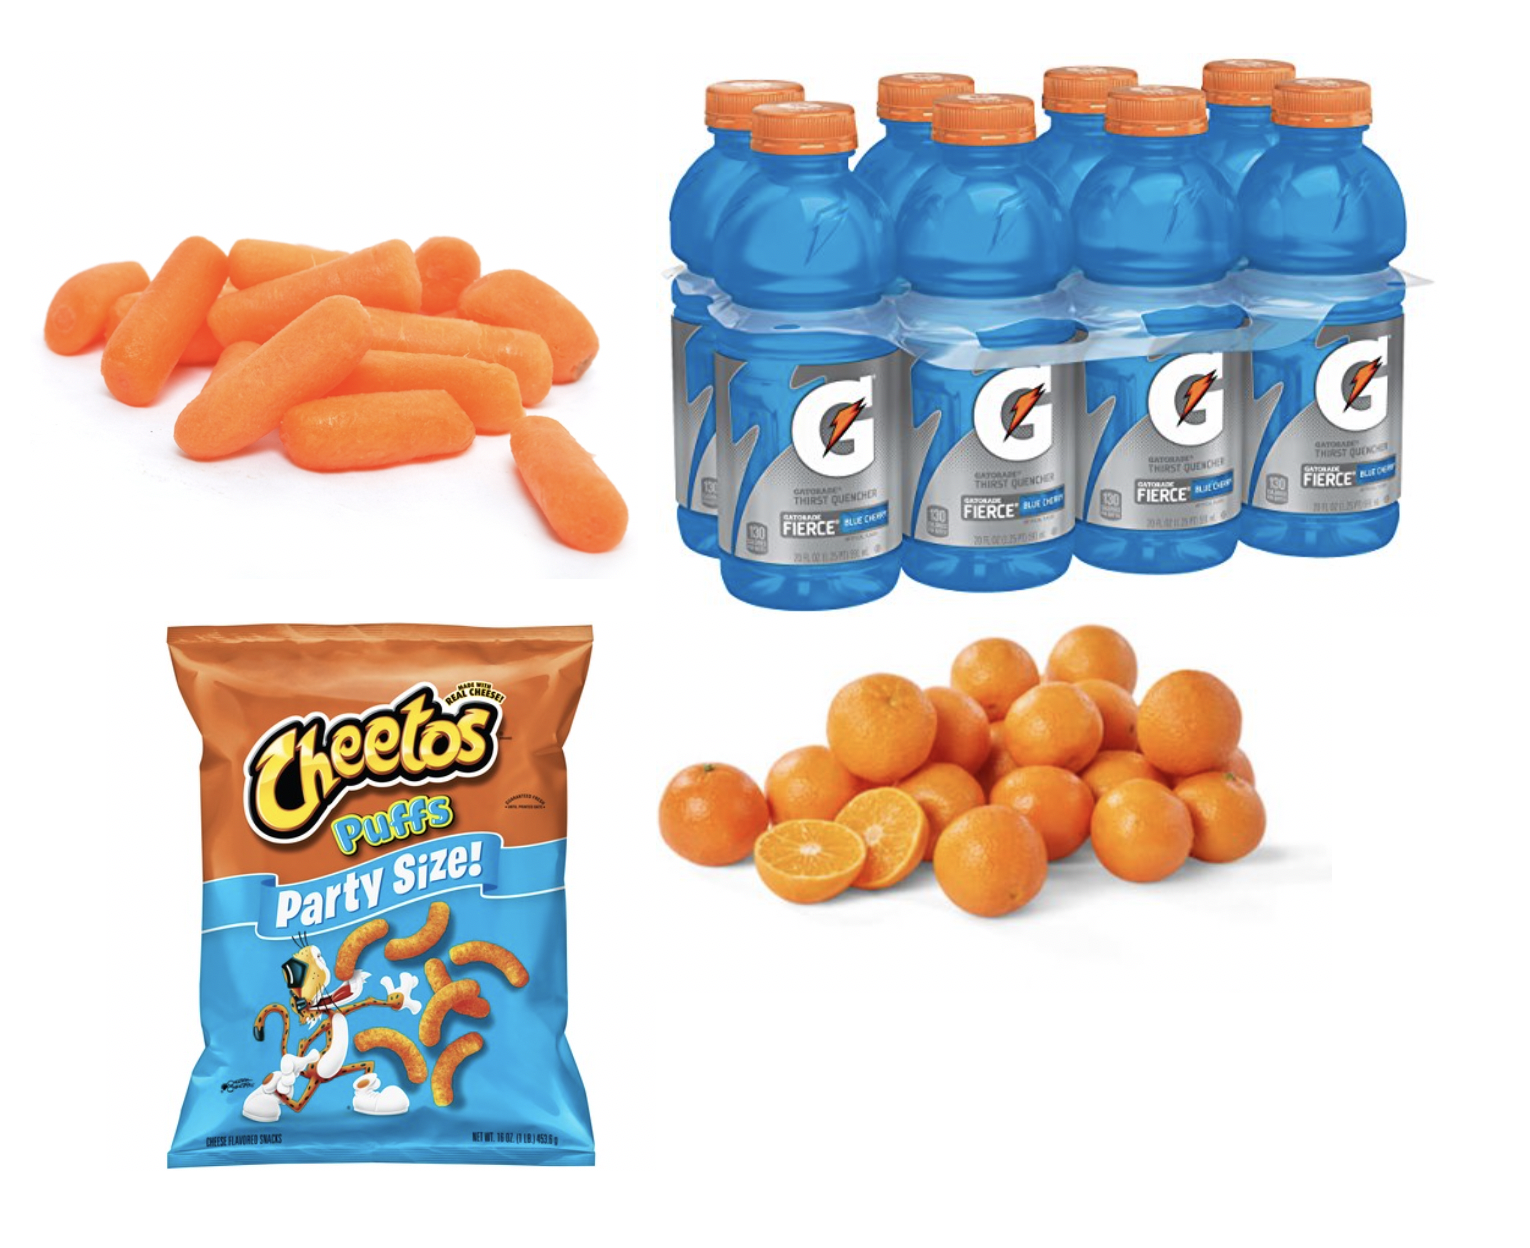 Image sources:   Carrots ,  Cheetos ,  Gatorade  and  clementines